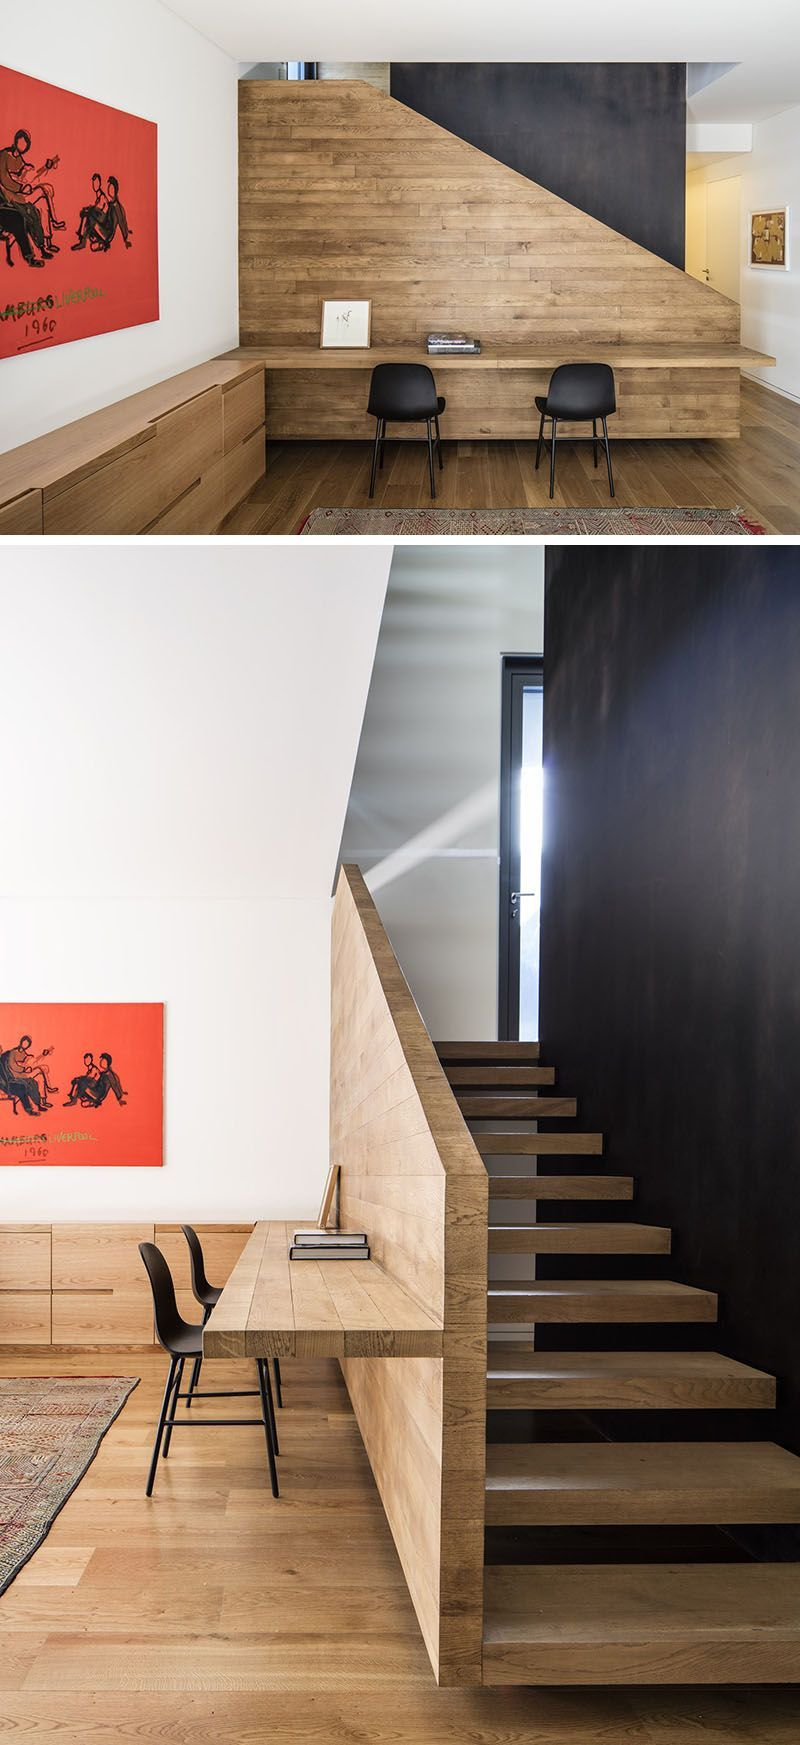 Home interior stairs interior design ideas  build a desk on an unused wall space to